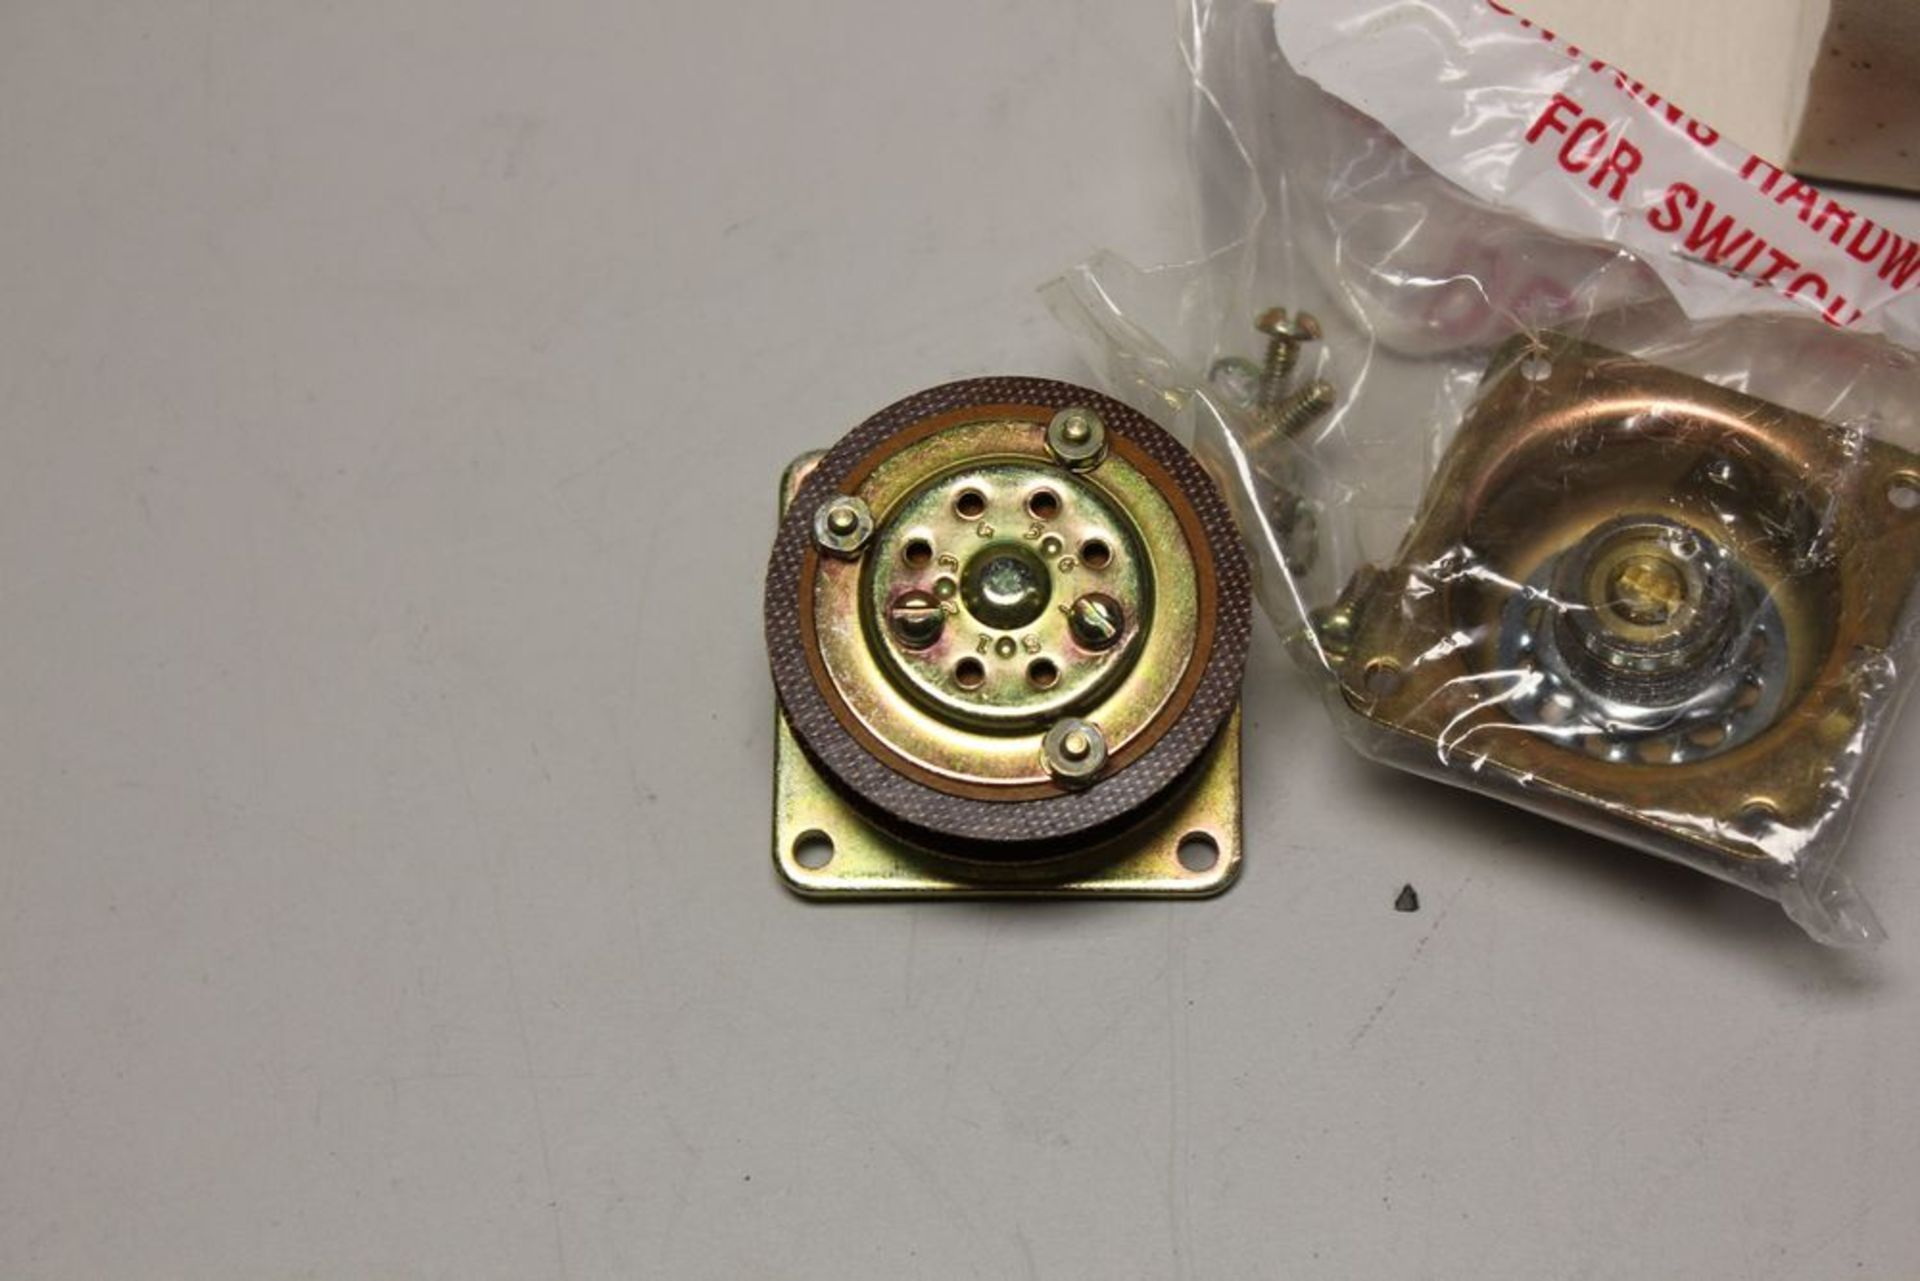 NEW ELECTROSWITCH ROTARY SWITCH - Image 4 of 8